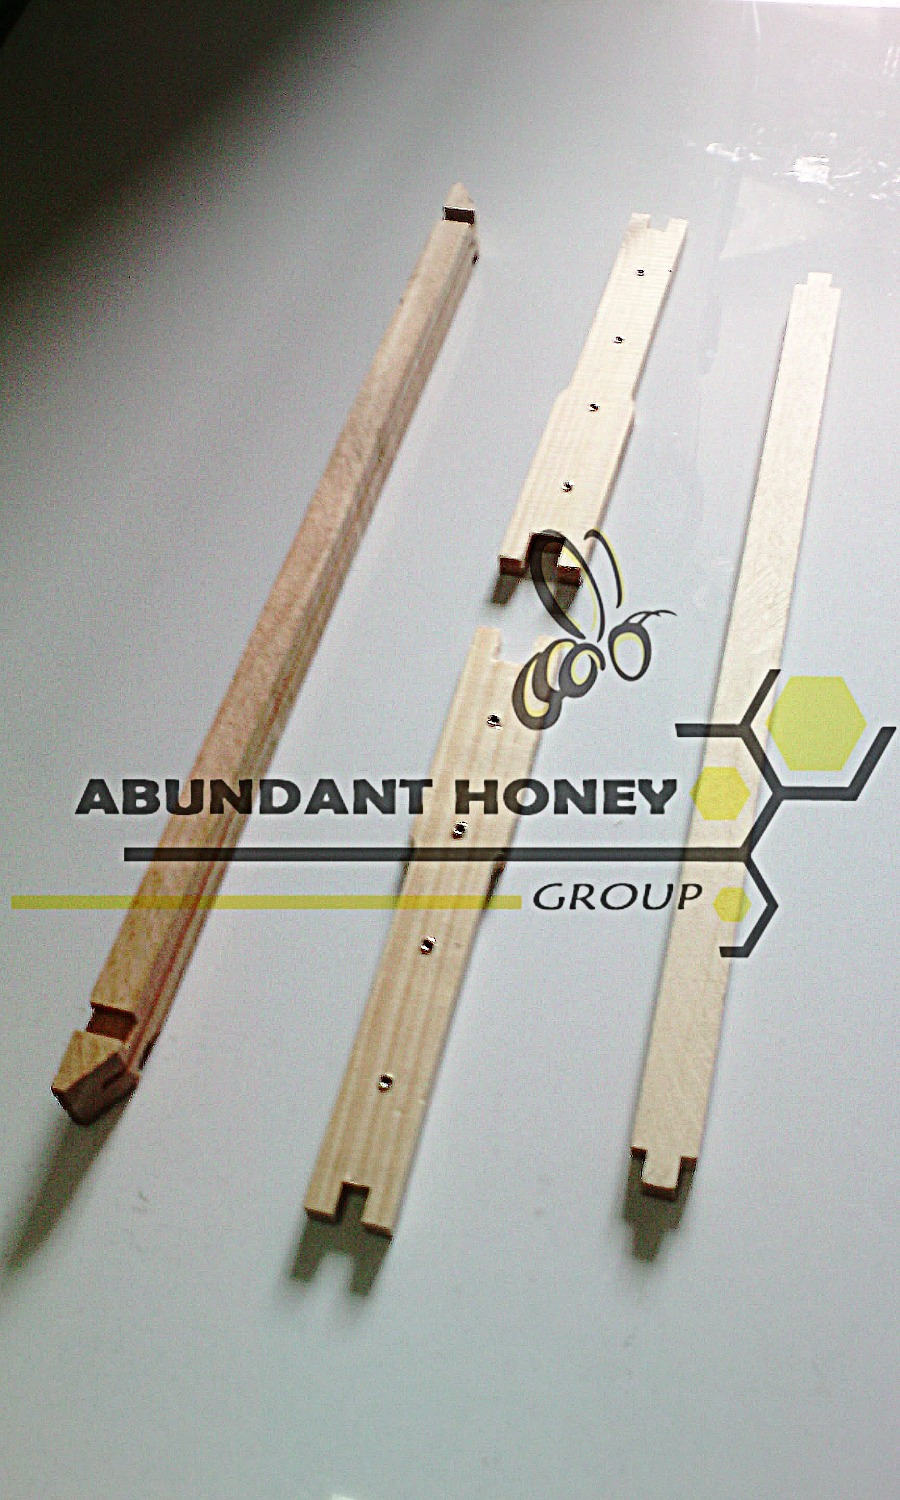 Apicultura  en Colombia ABUNDANT HONEY GROUP_edited.jpg